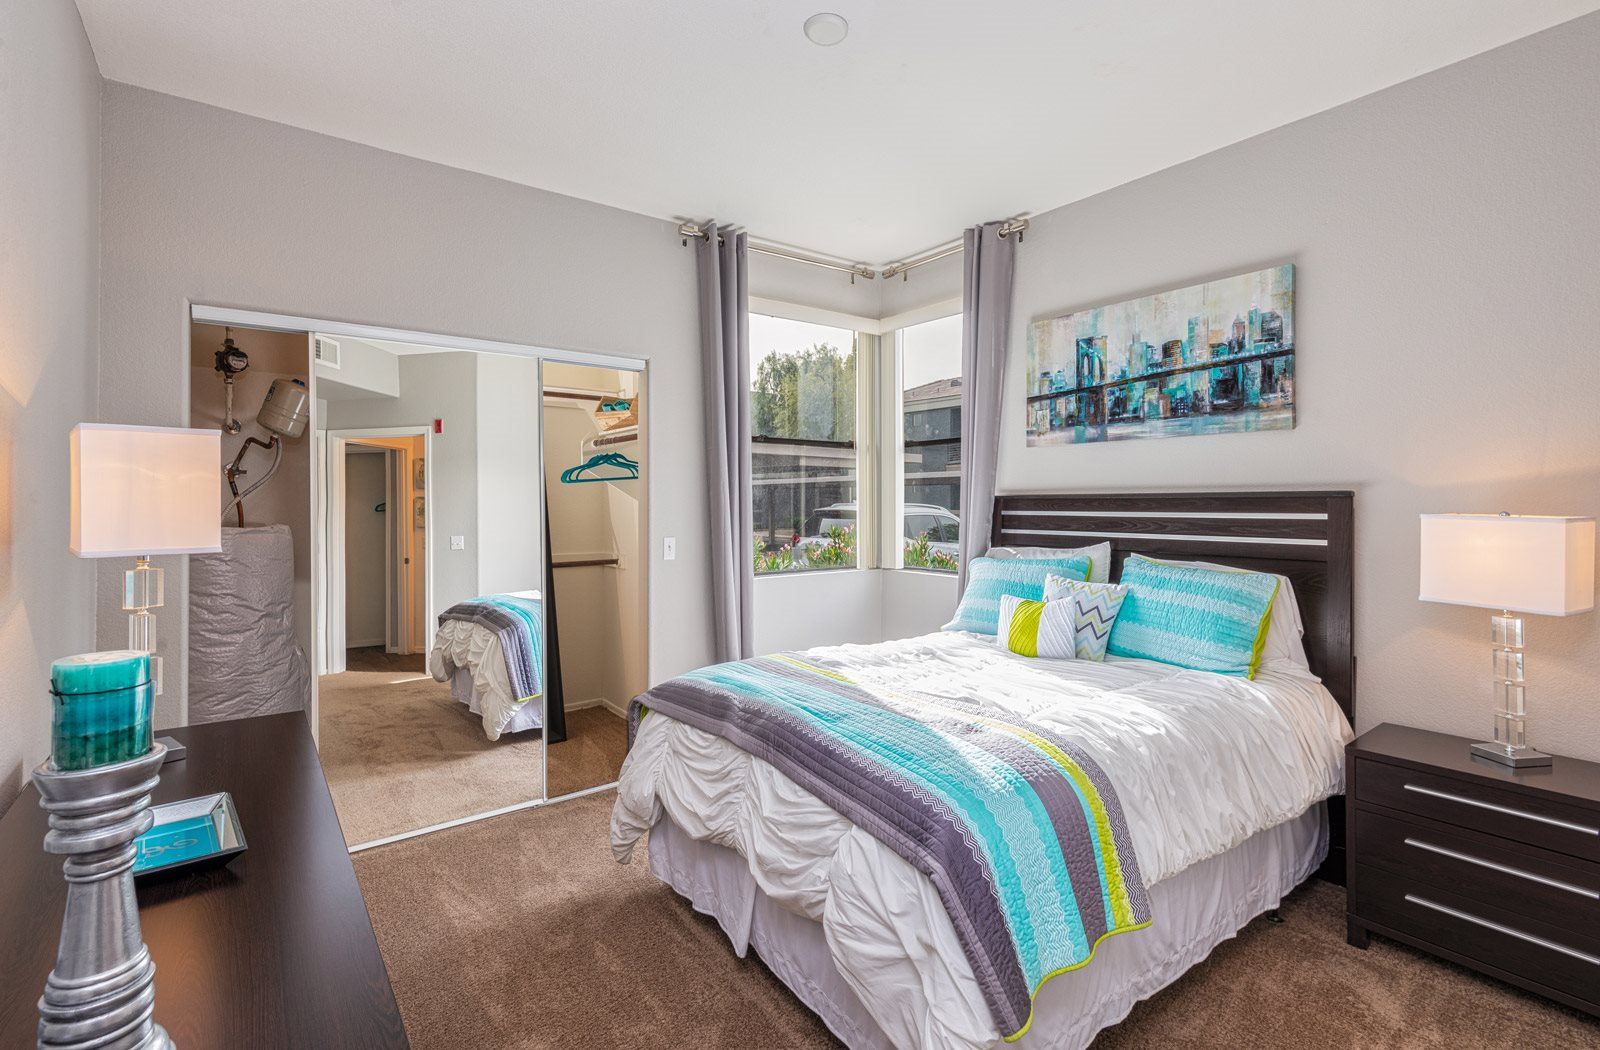 bedrooms with hardwood floor | Element Deer Valley Apartments Phoenix, Arizona